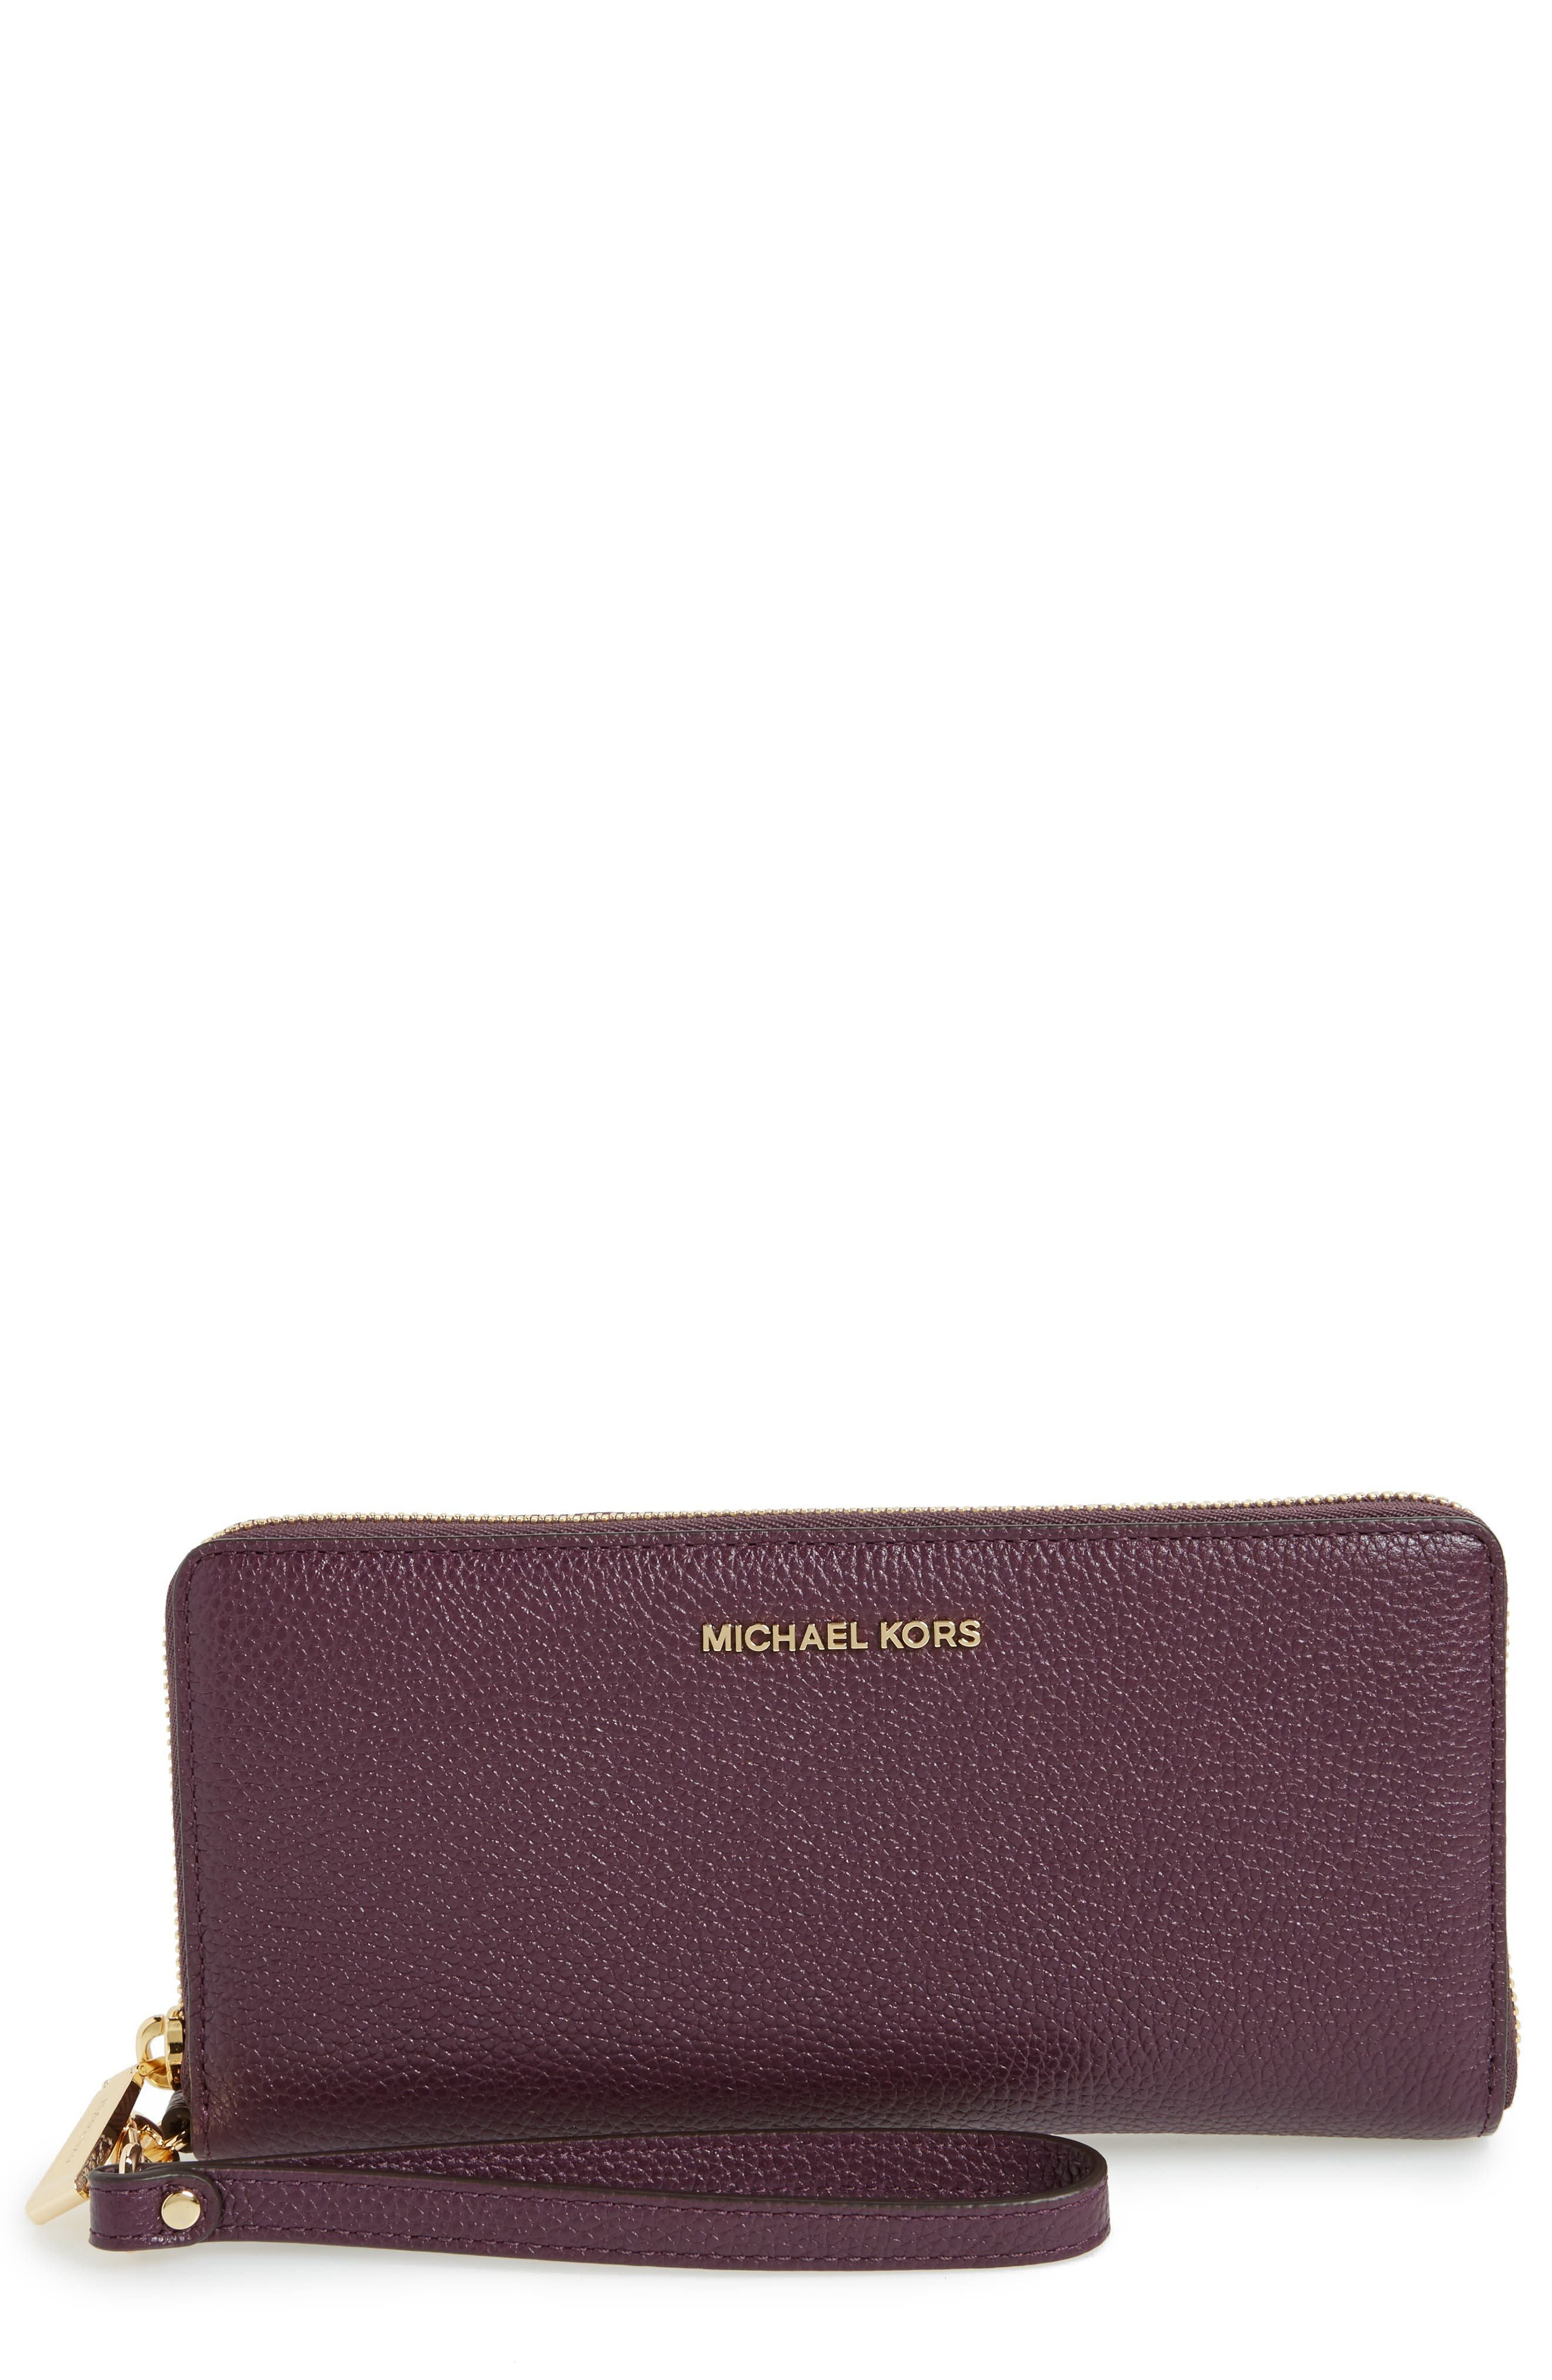 'Mercer' Leather Continental Wallet,                         Main,                         color, 599